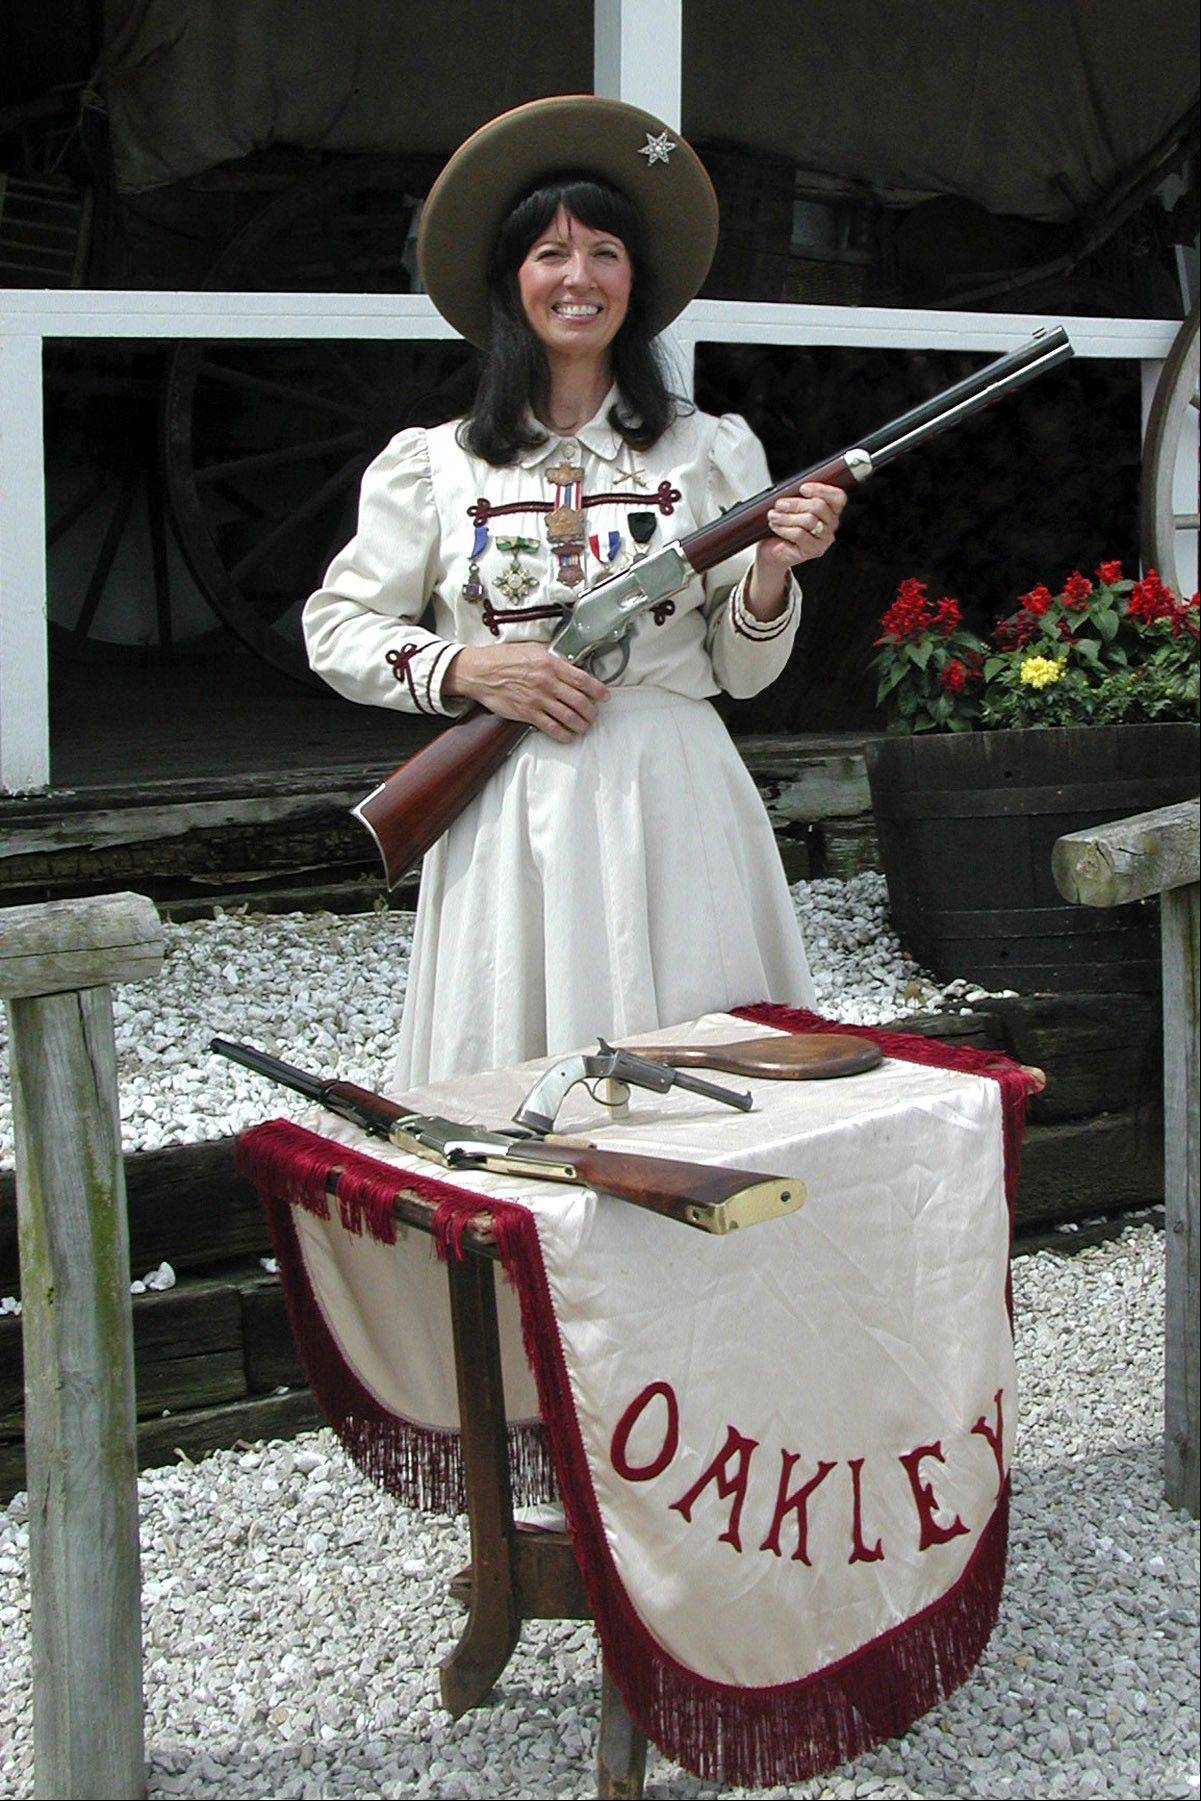 Meet Annie Oakley and learn about frontier life at Oregon Trail Days, July 21-22.